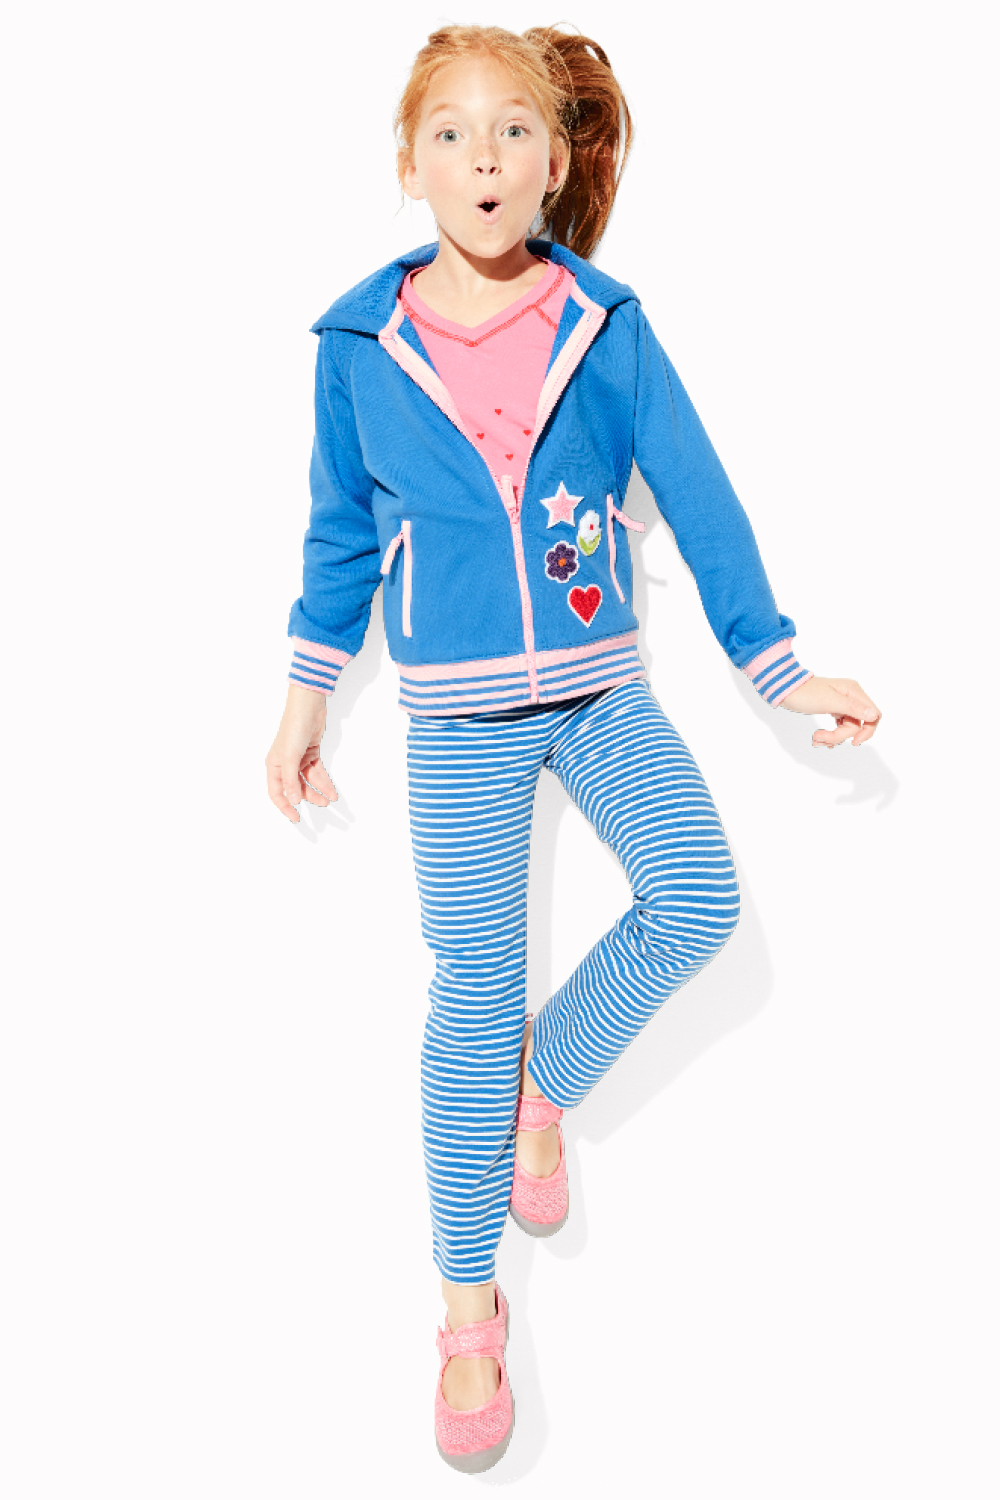 Hanna Andersson Girls Bright Playclothes